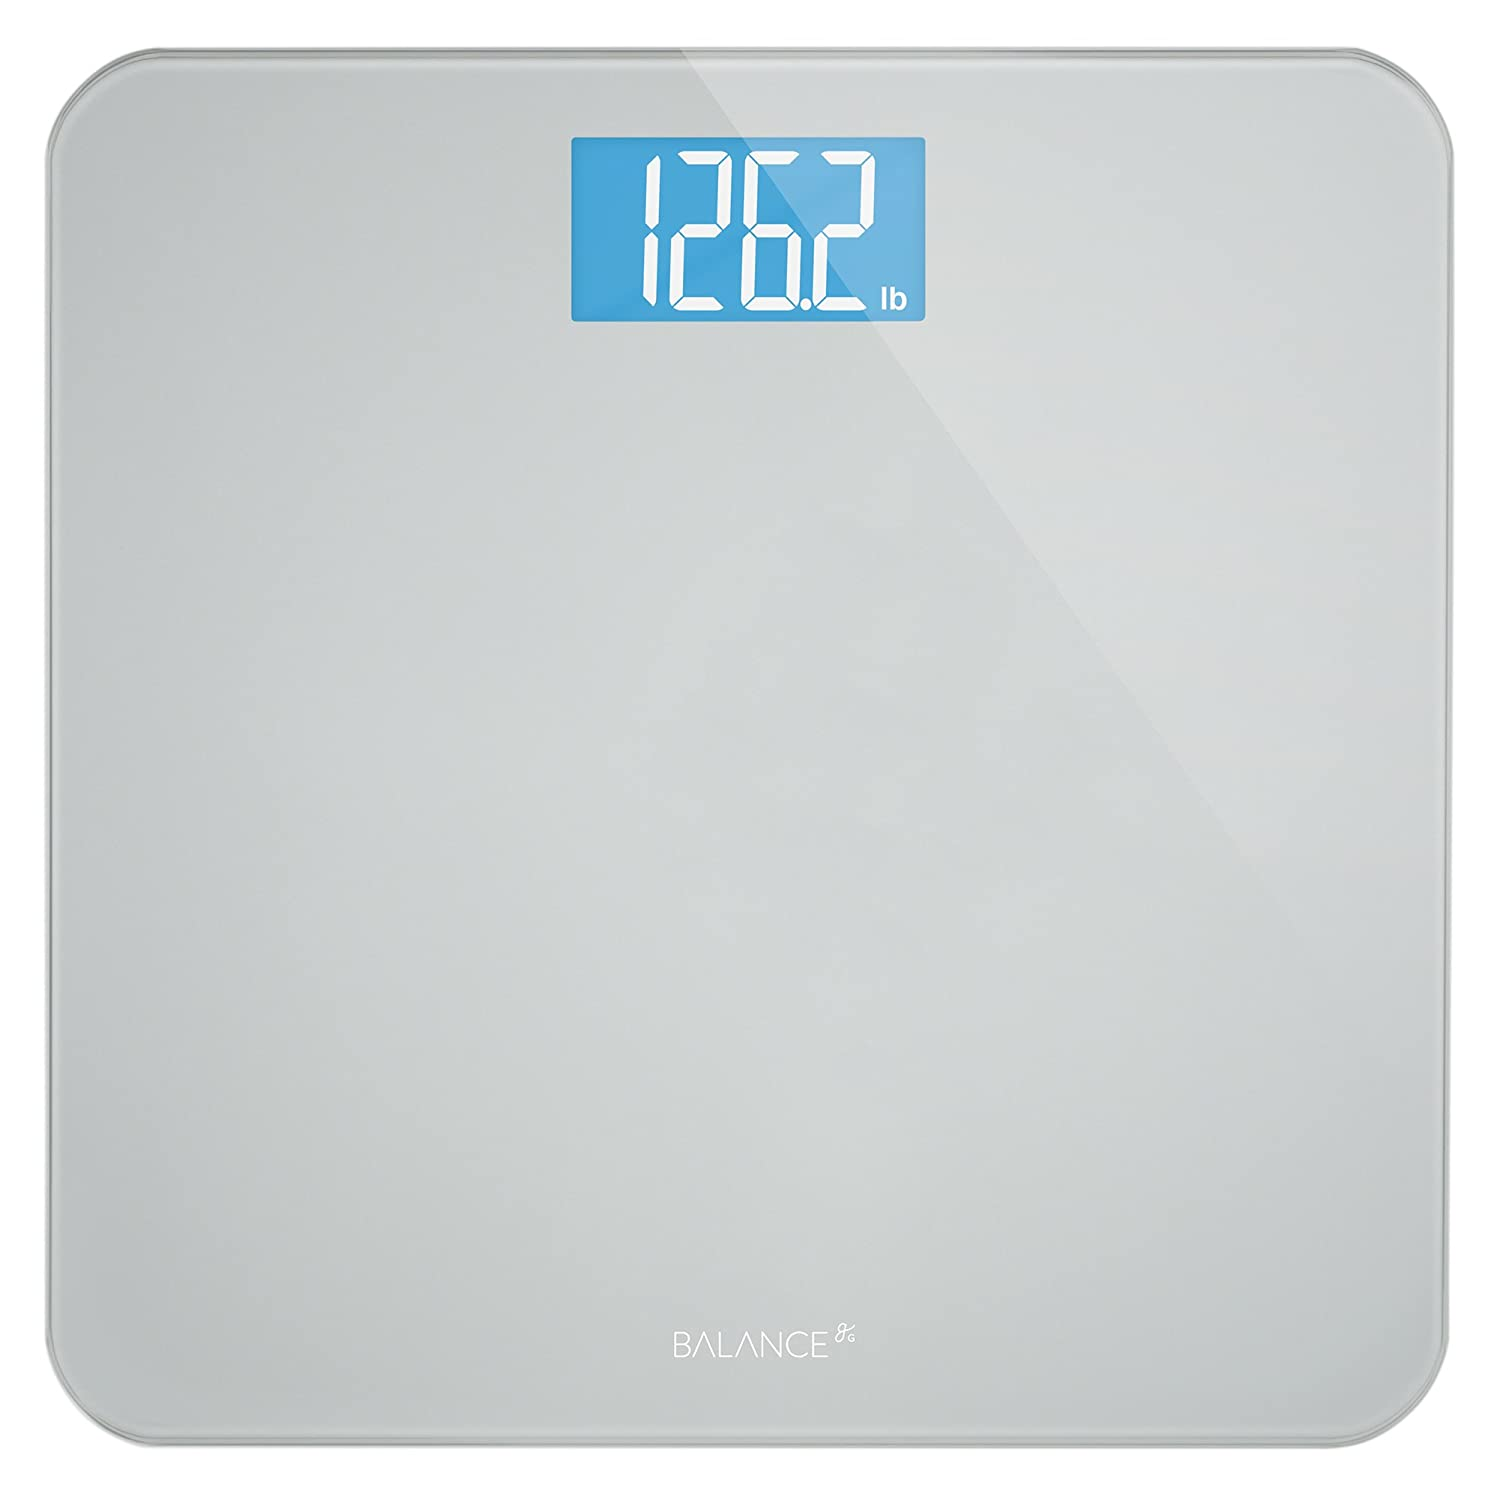 Amazoncom Greater Goods Backlit Digital Body Weight Bathroom - Large display digital bathroom scales for bathroom decor ideas